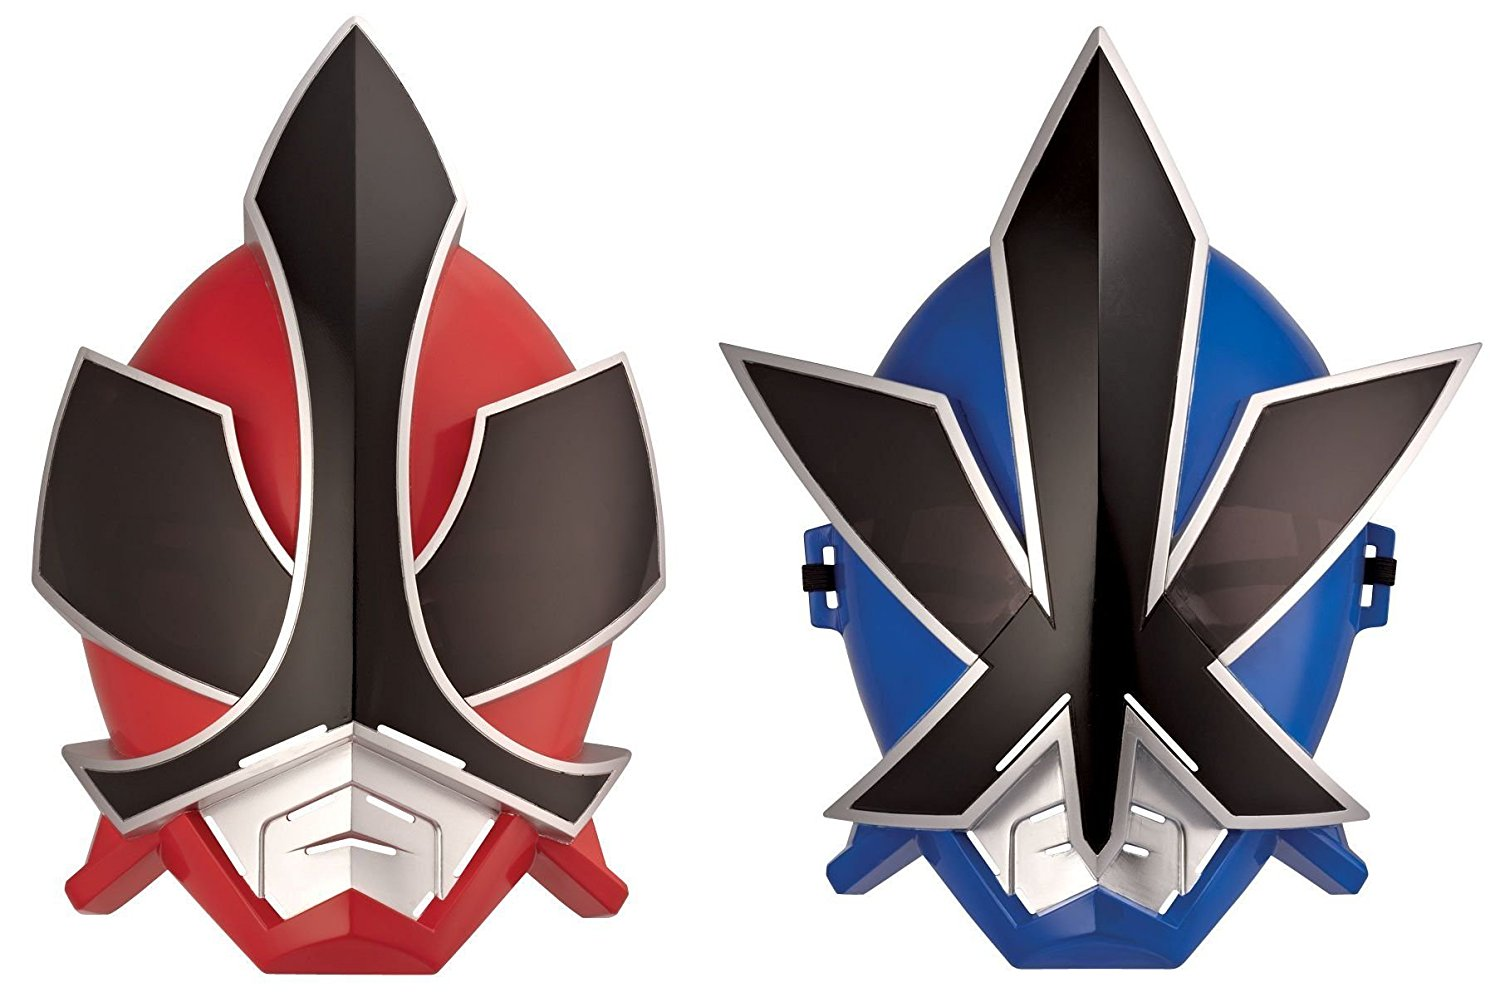 Power Rangers Samurai Red Ranger Mask & Blue Ranger Mask Set